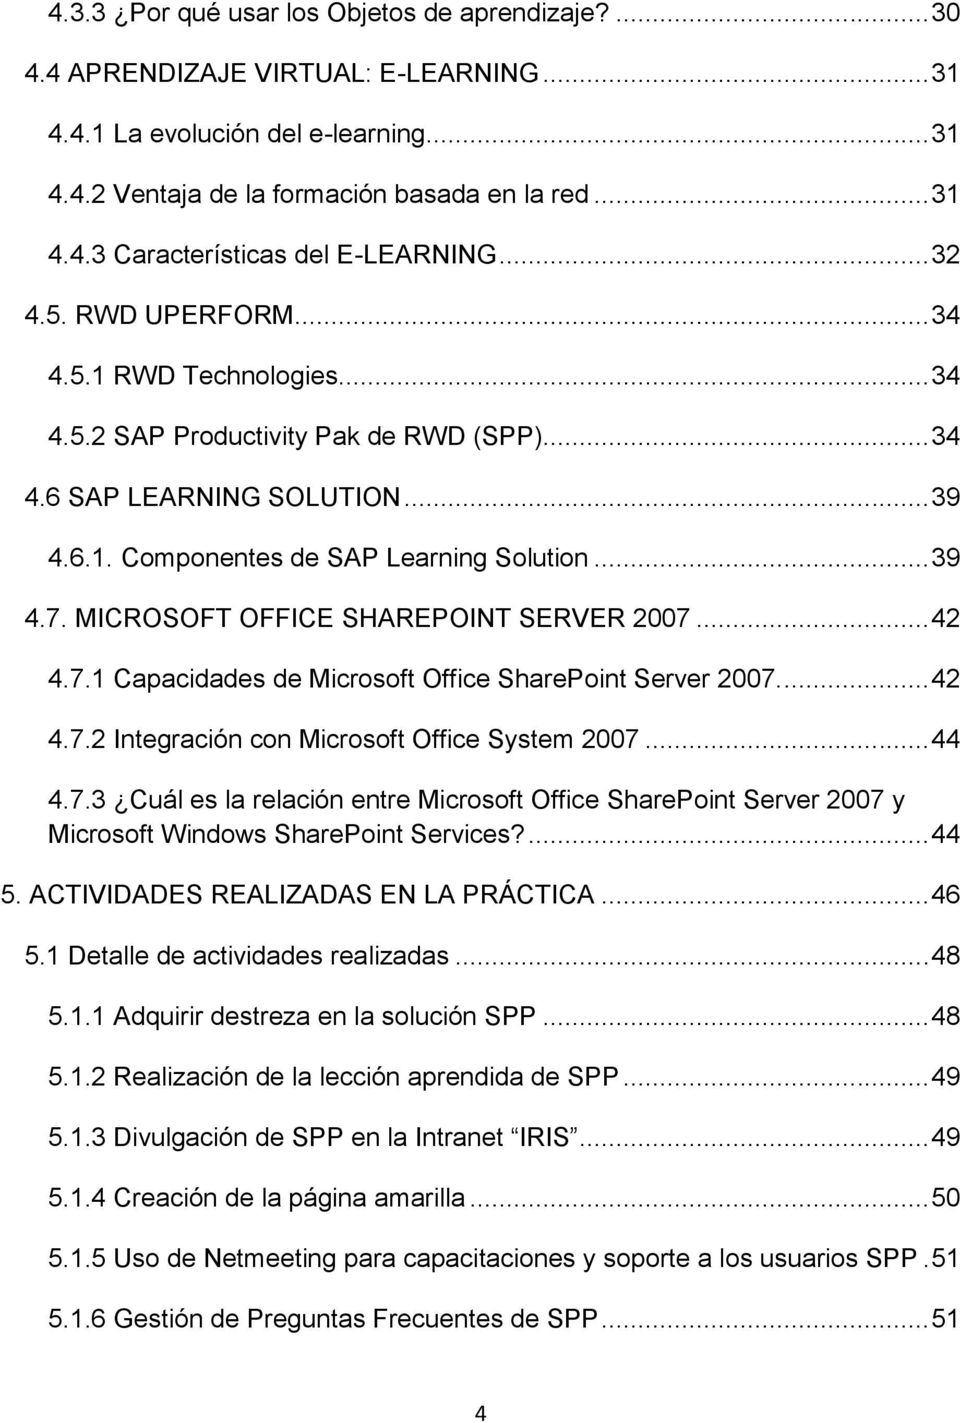 MICROSOFT OFFICE SHAREPOINT SERVER 2007... 42 4.7.1 Capacidades de Microsoft Office SharePoint Server 2007.... 42 4.7.2 Integración con Microsoft Office System 2007... 44 4.7.3 Cuál es la relación entre Microsoft Office SharePoint Server 2007 y Microsoft Windows SharePoint Services?